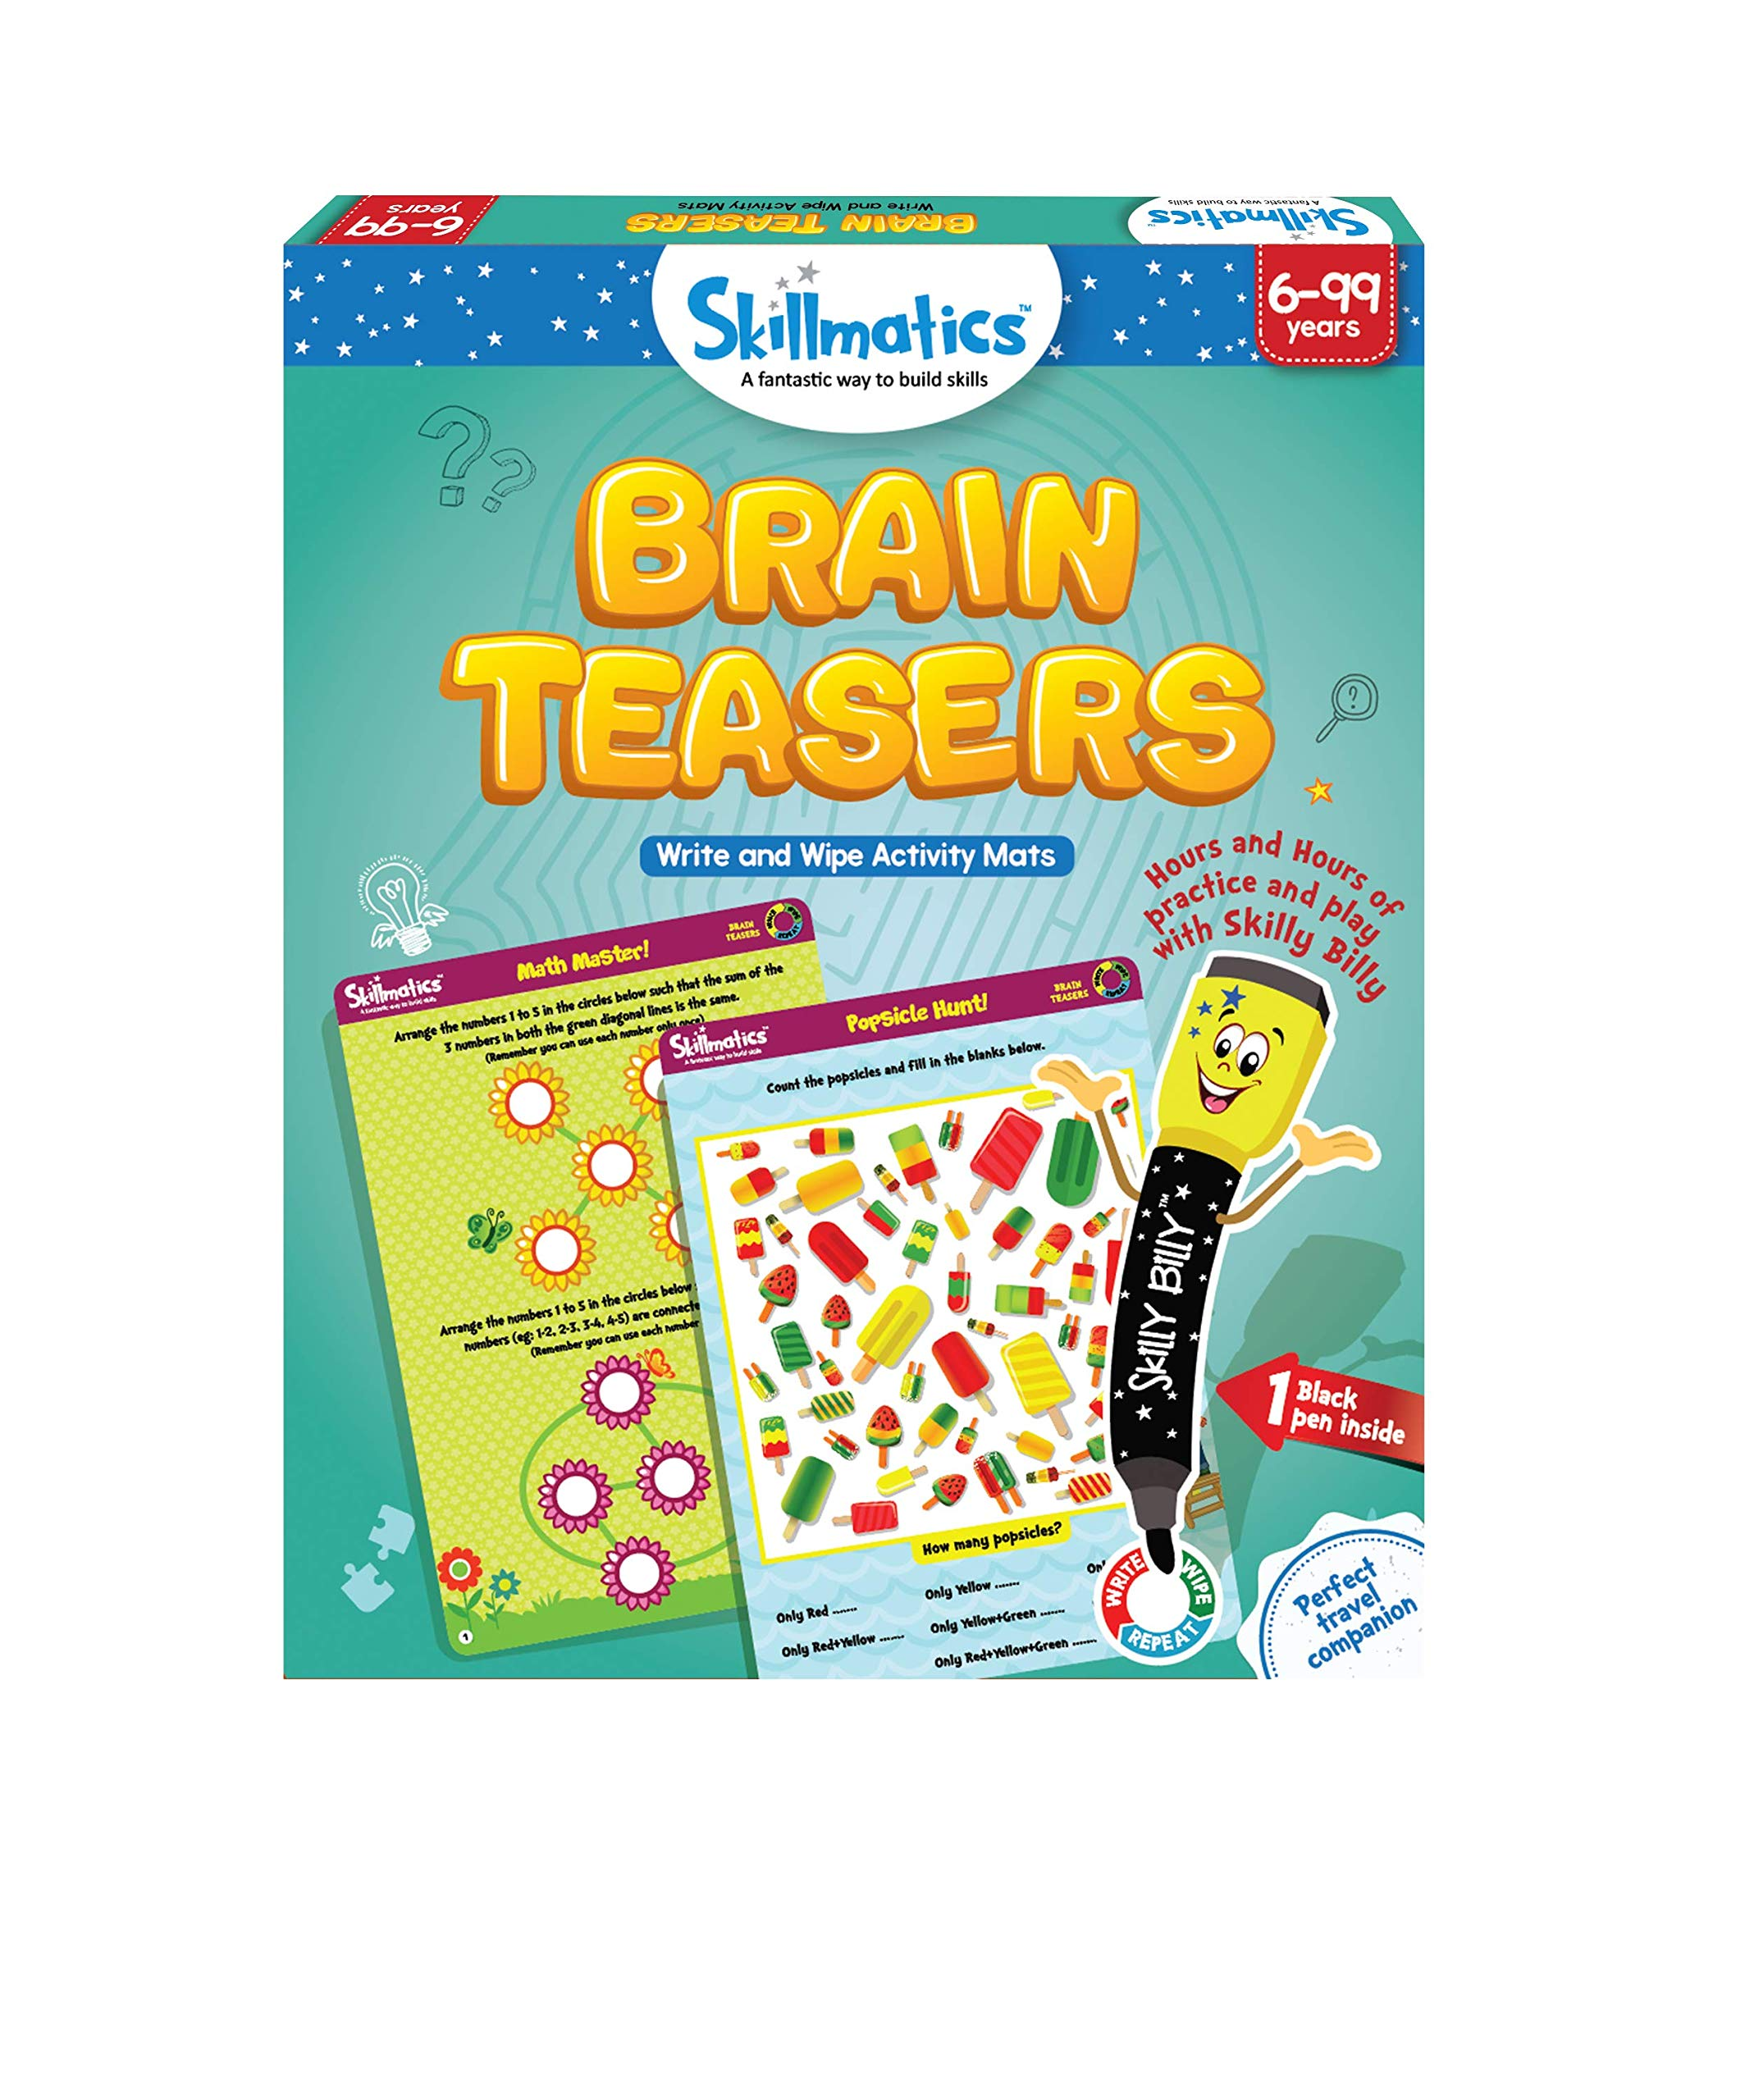 Skillmatics Educational Game: Brain Teasers (6-99 Years) | Erasable and Reusable Activity Mats | Gifts for Boys and Girls 6, 7, 8, 9, Years and Up | Travel Friendly Toy with Dry Erase Marker